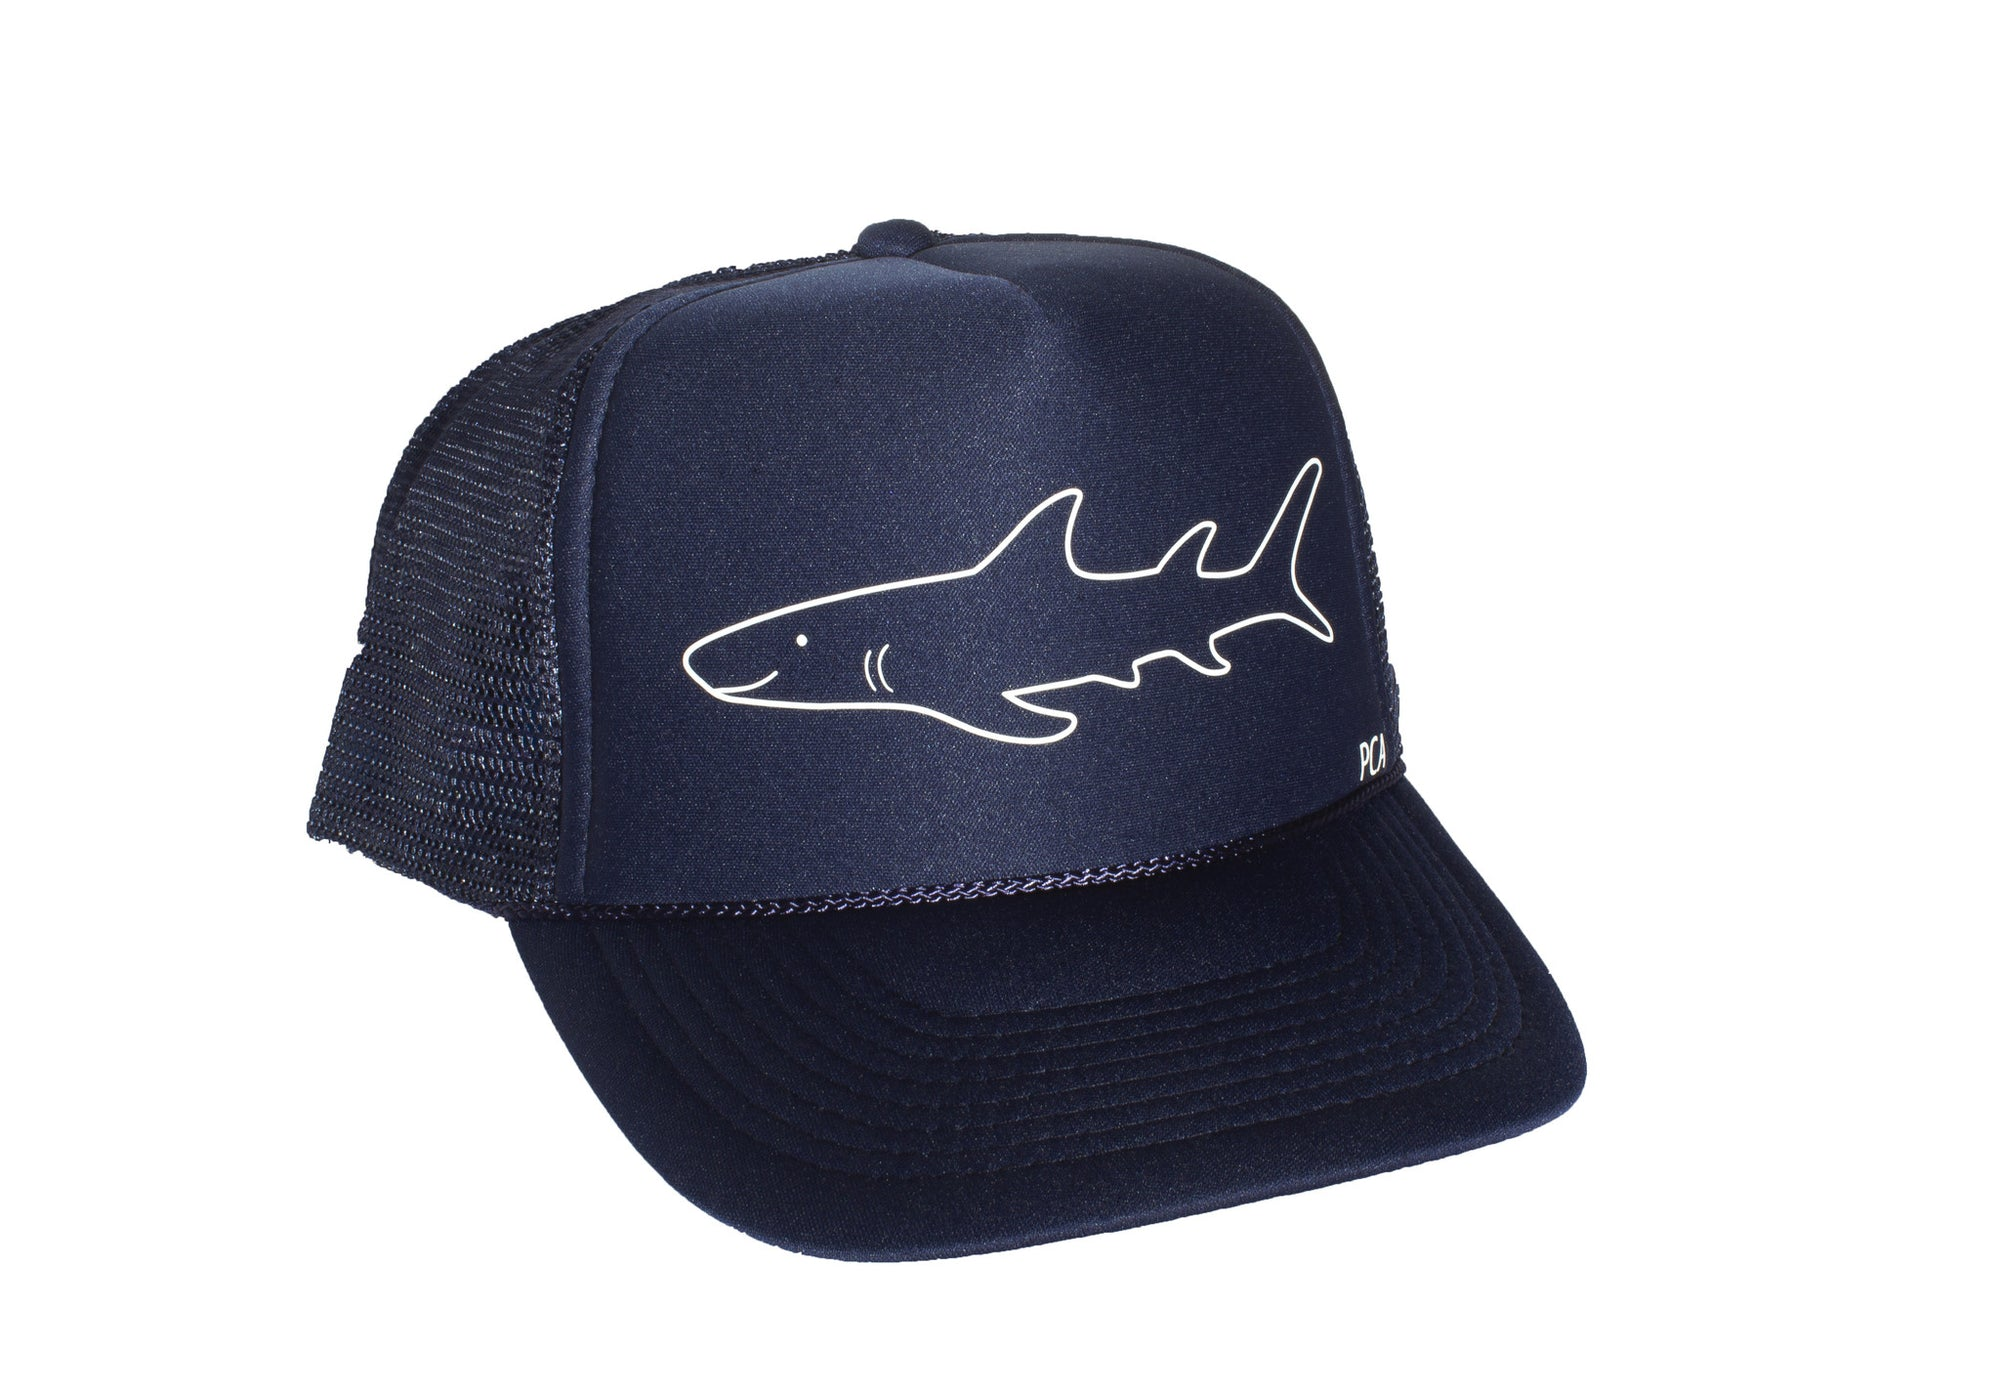 Friendly Shark Trucker Hat - Front View - Designed & Printed in USA - Pacific Coast Apparel, Encinitas, California